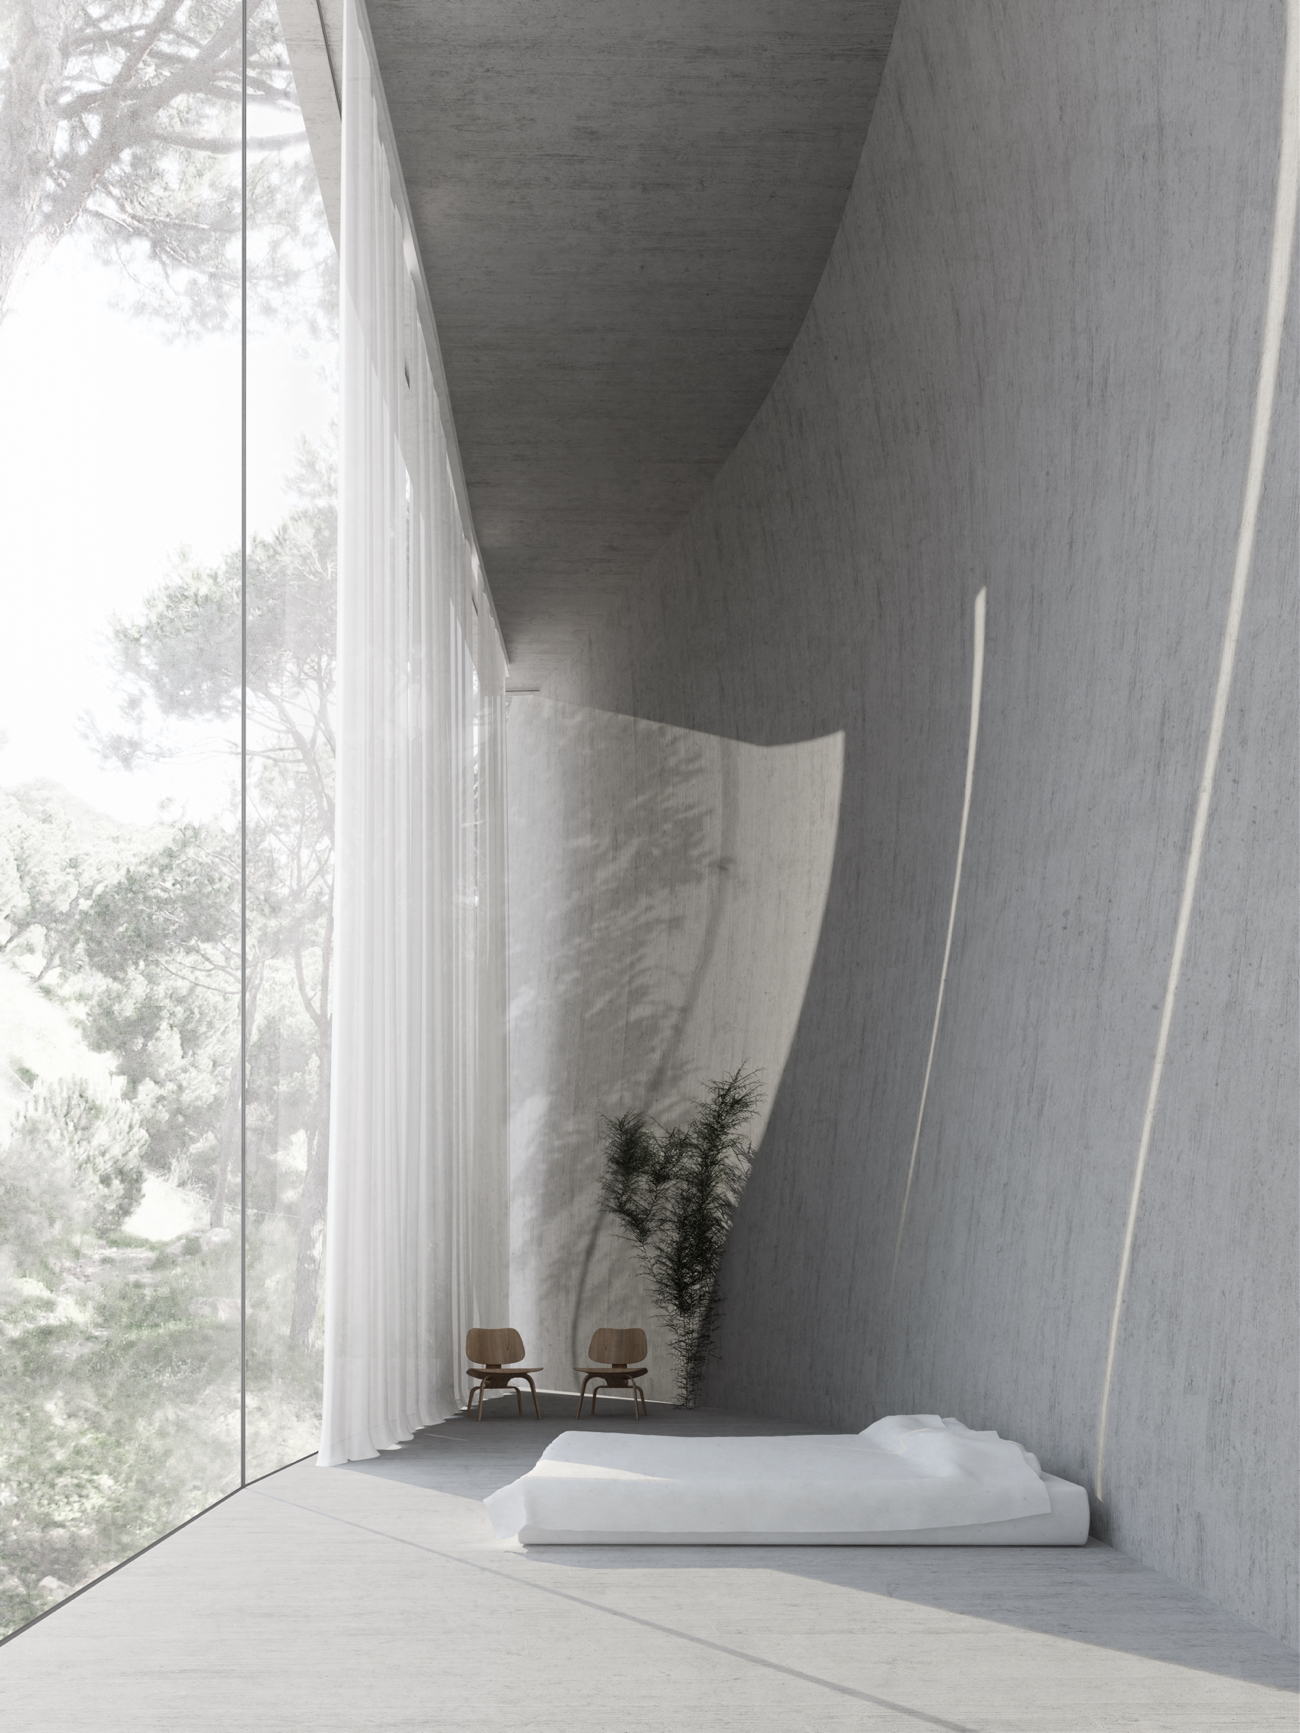 Full-height window looking into the forest, great option to create a sense of risk in a biophilic design.